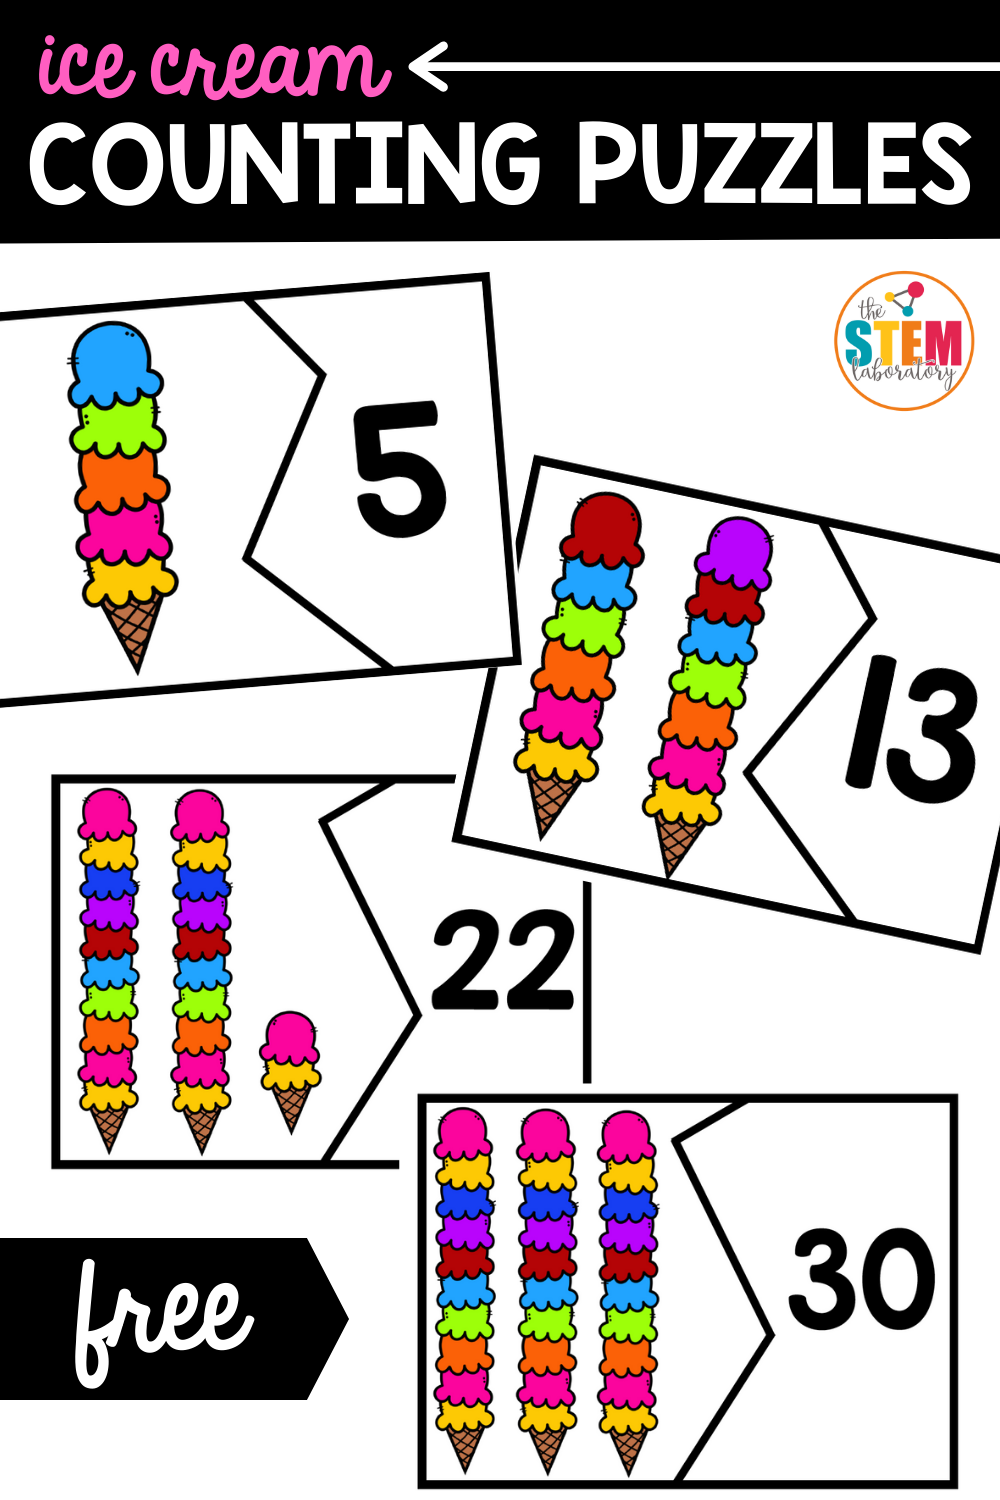 Ice Cream Counting Puzzles